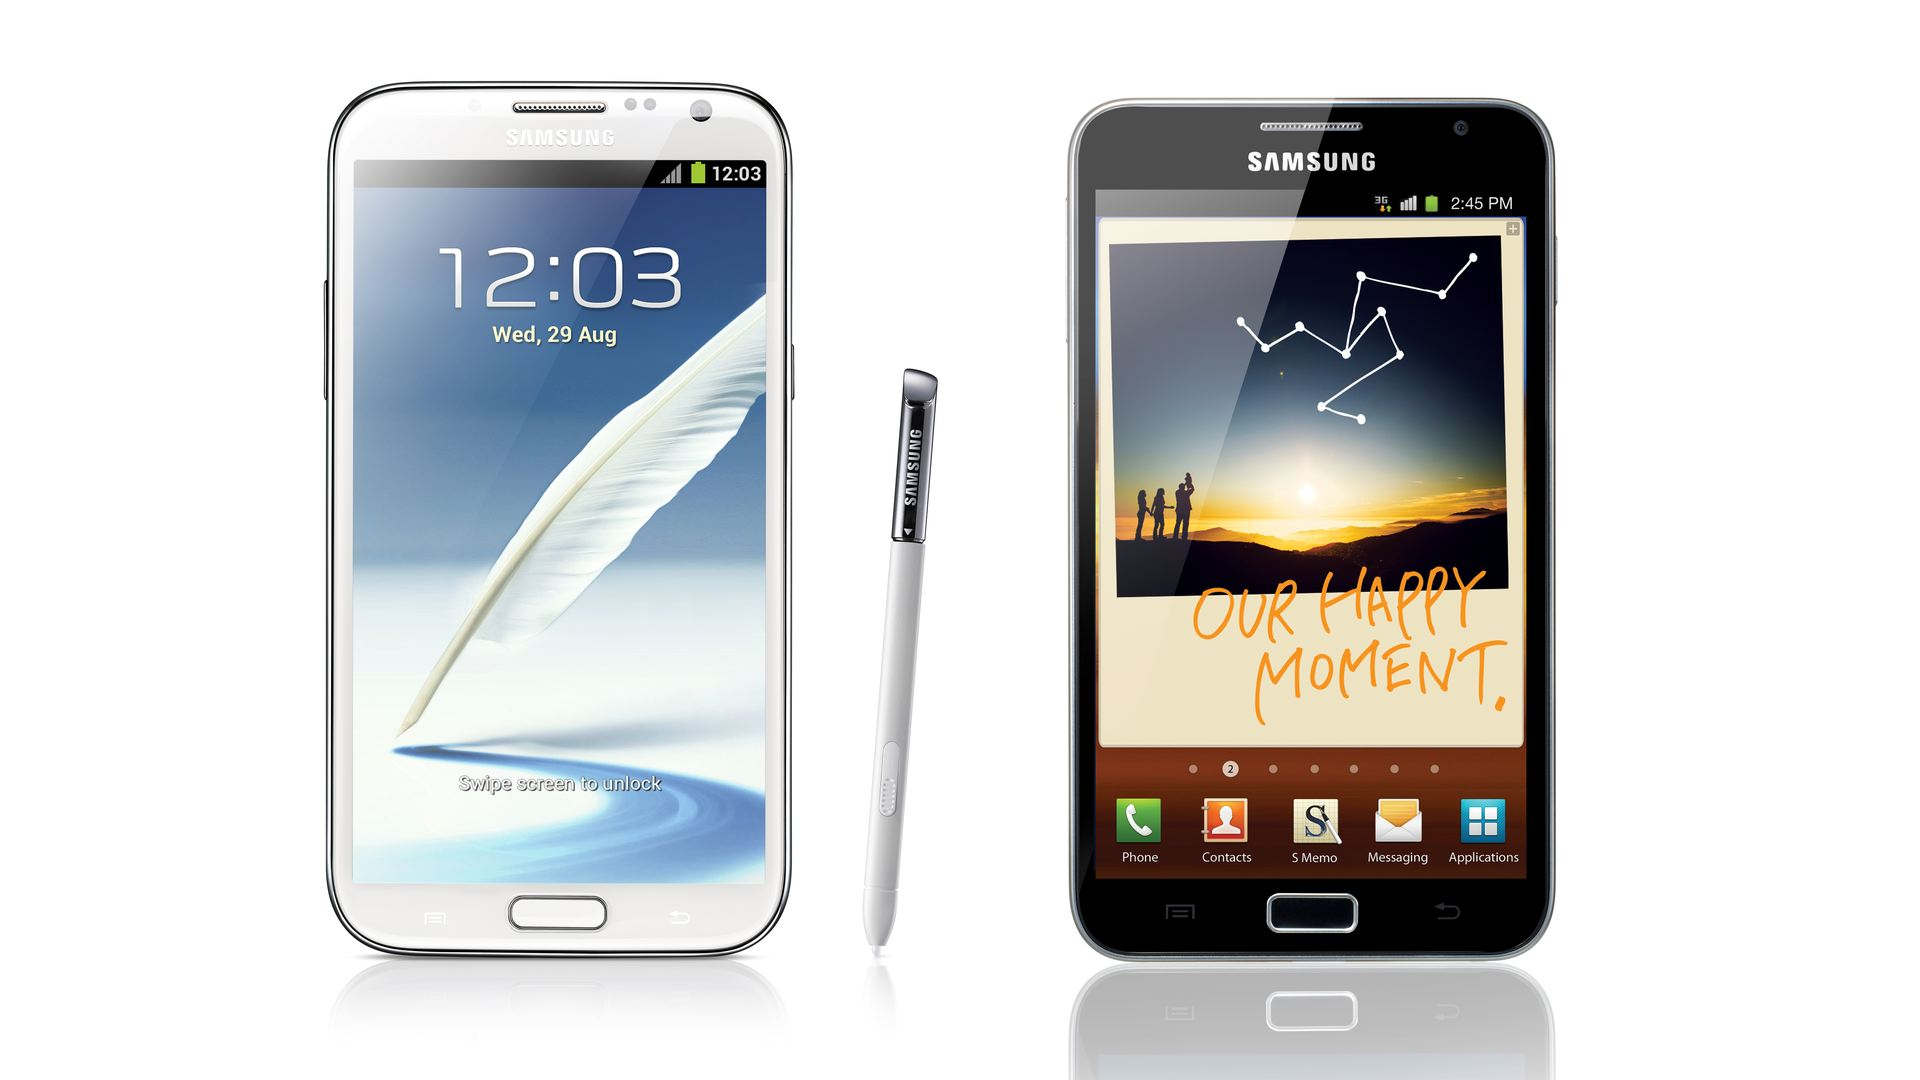 The Samsung Galaxy Note II and Galaxy Note I.